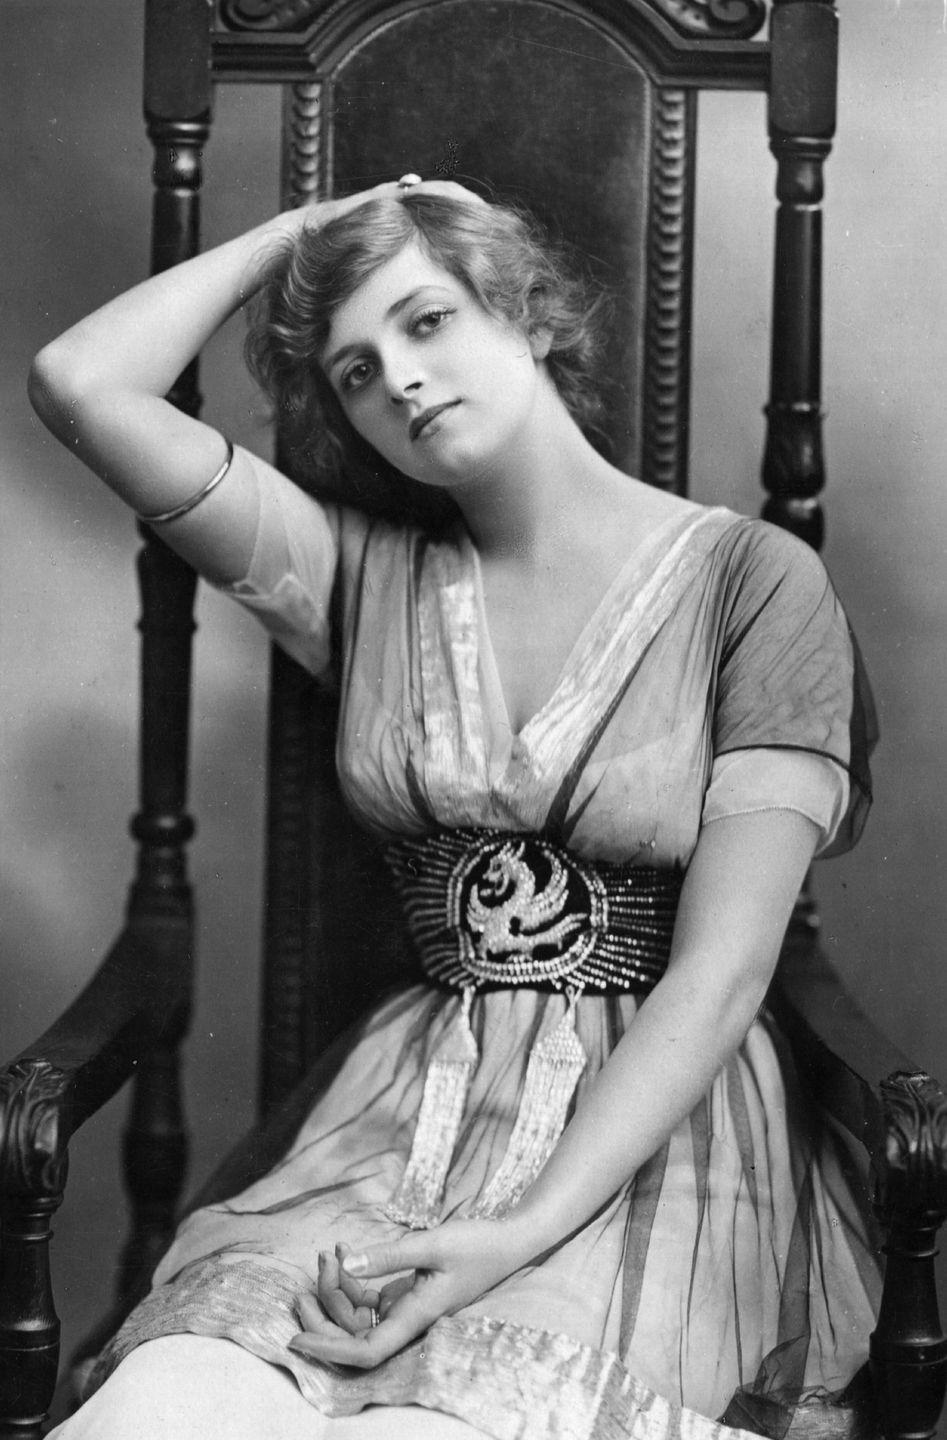 <p>Cooper began her illustrious acting career on the stage, and she starred in the lead role as Pamela in <em>The Pursuit of Pamela </em>in 1913. The actress was queen of accessories, donning a gold arm cuff and embroidered belt at the waist. </p>